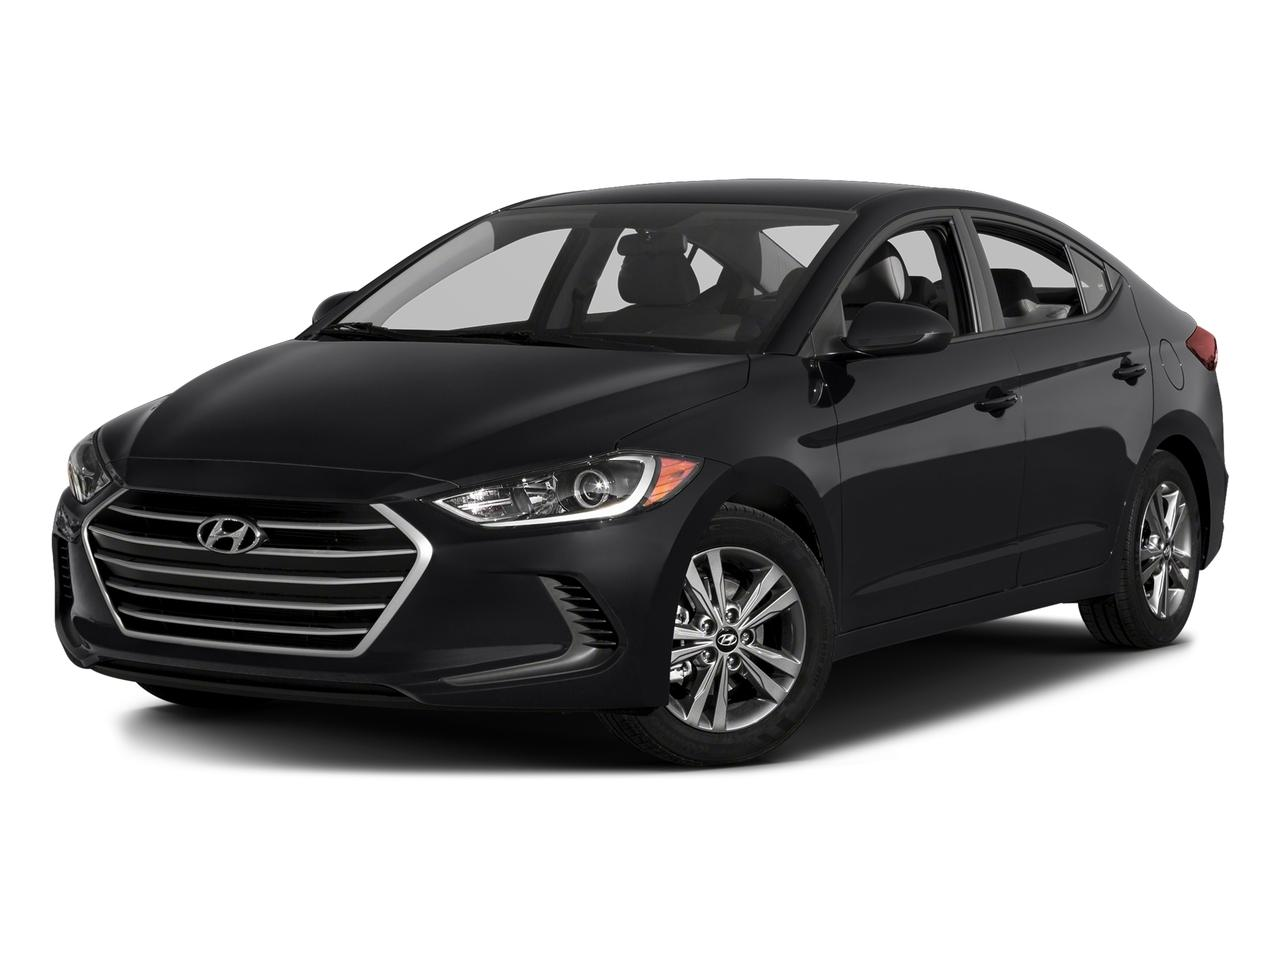 2018 Hyundai Elantra Vehicle Photo in Moon Township, PA 15108